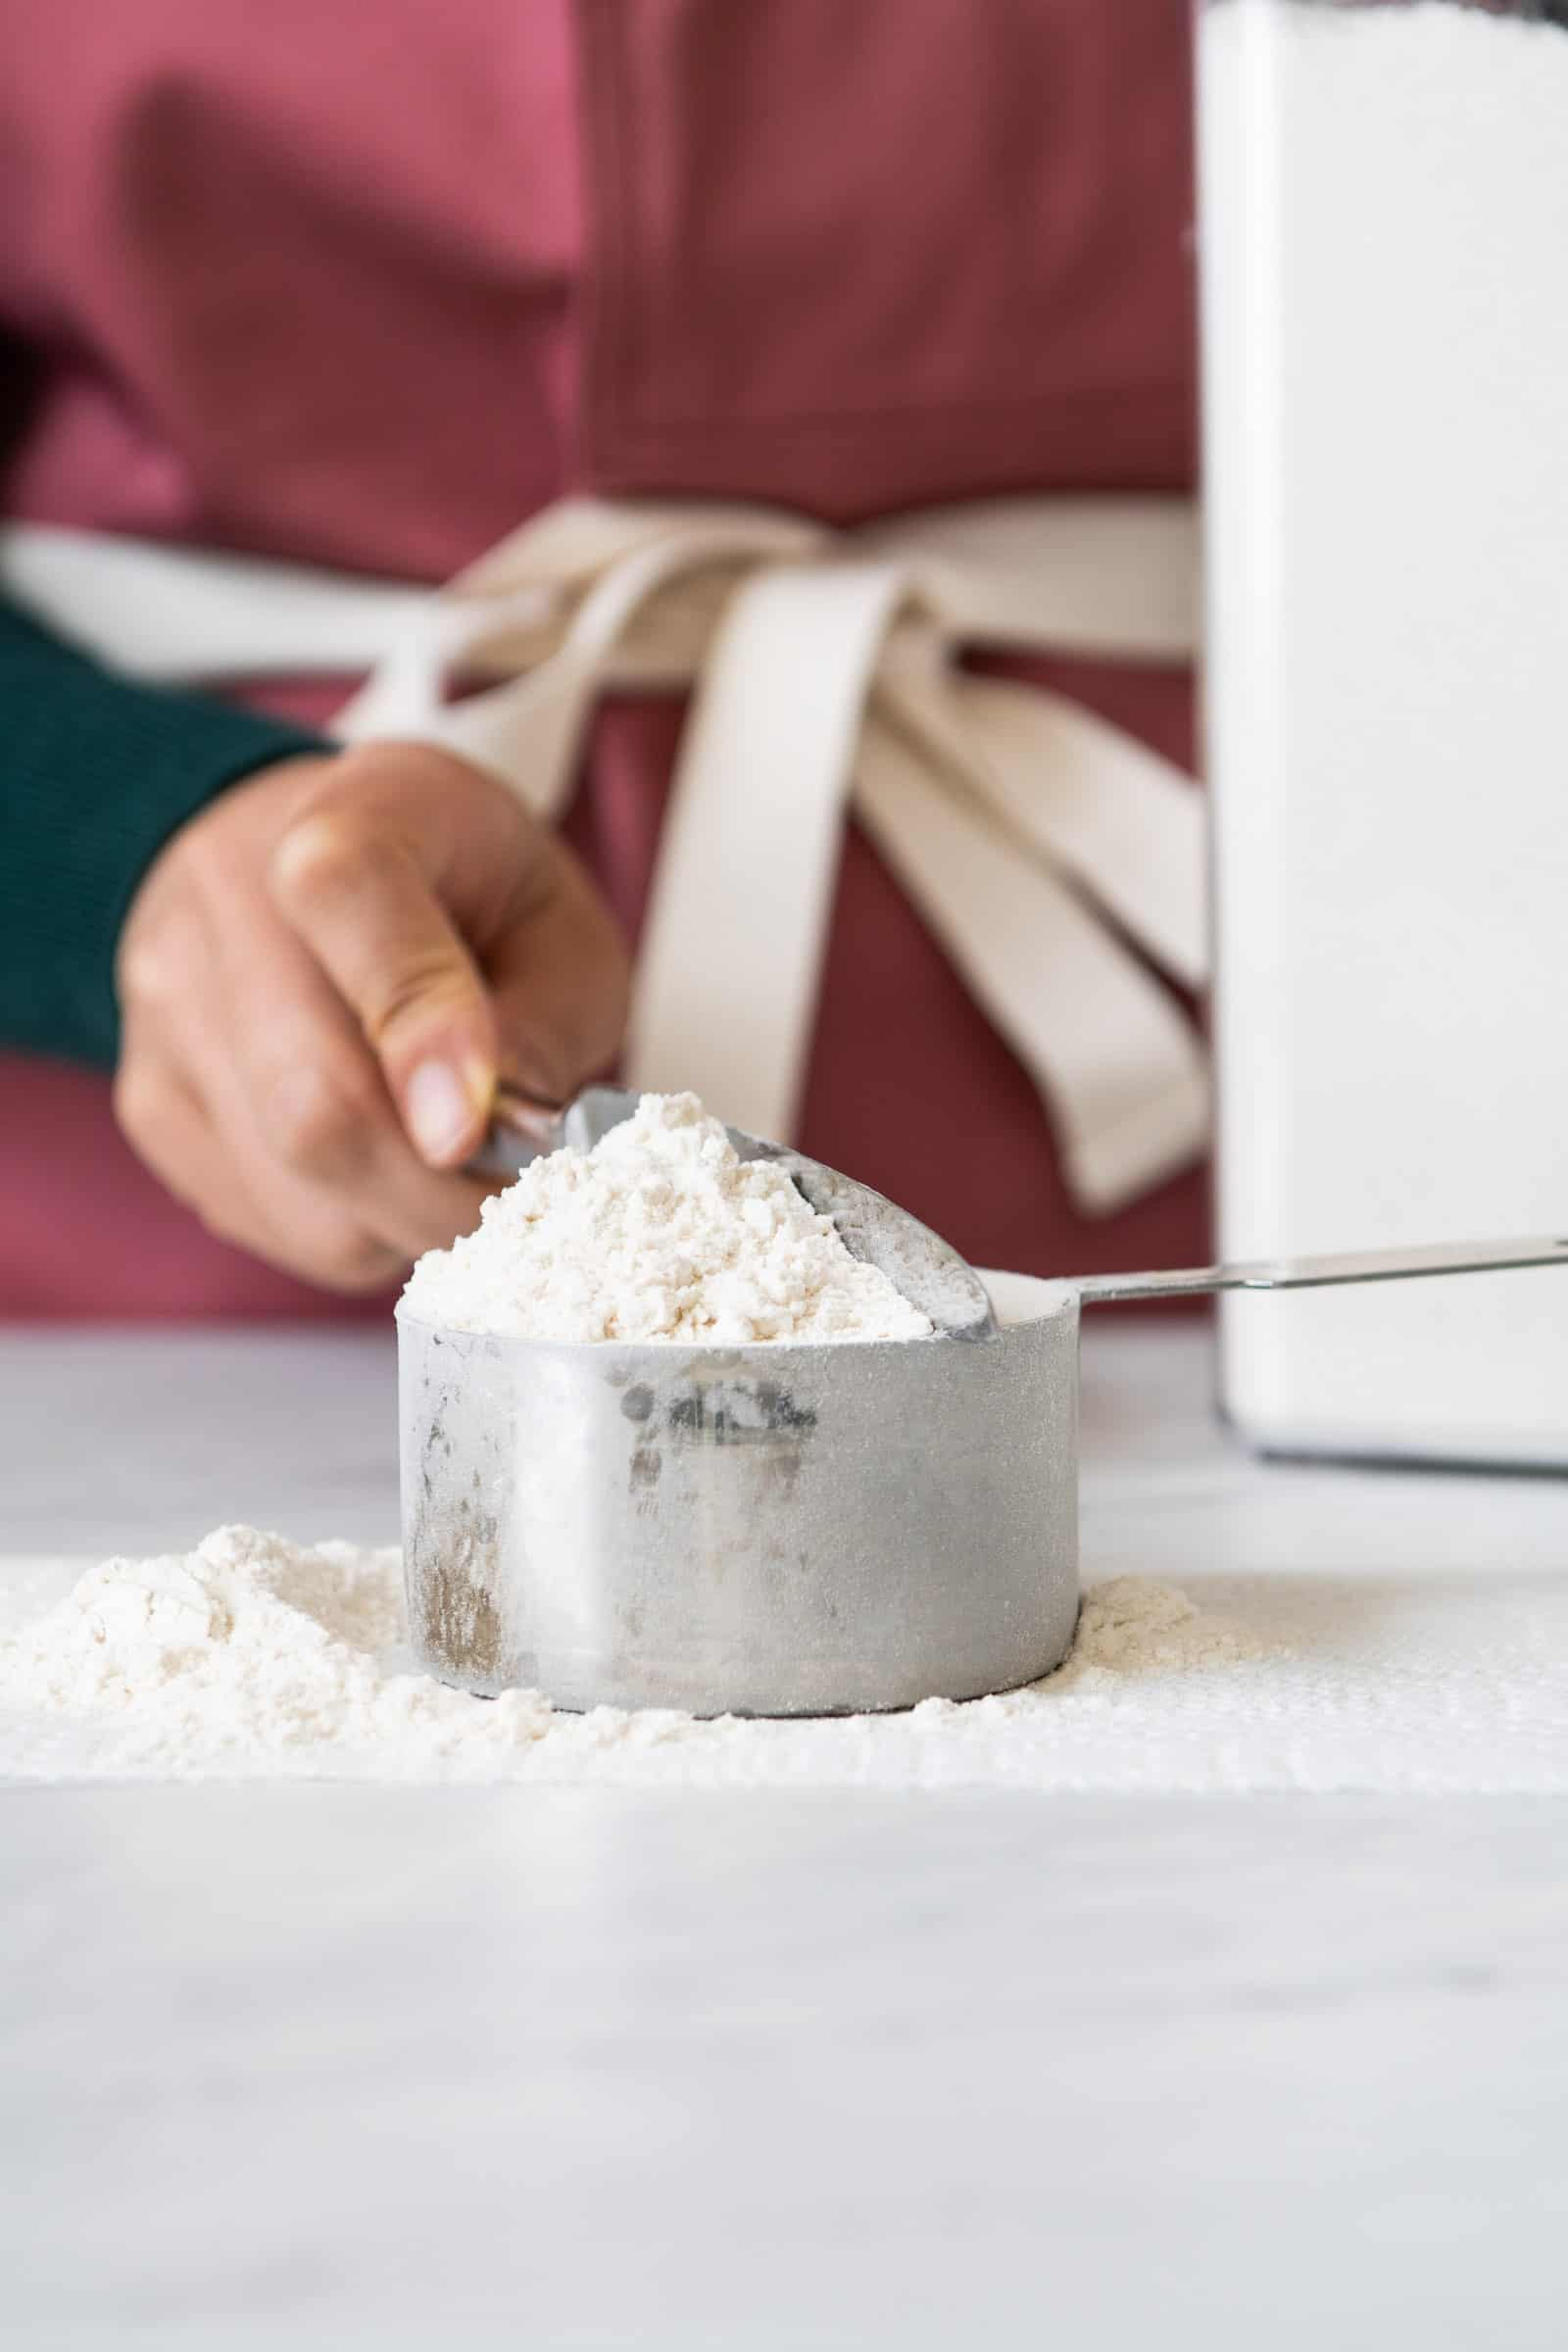 How to Measure Flour - leveling off flour at the top